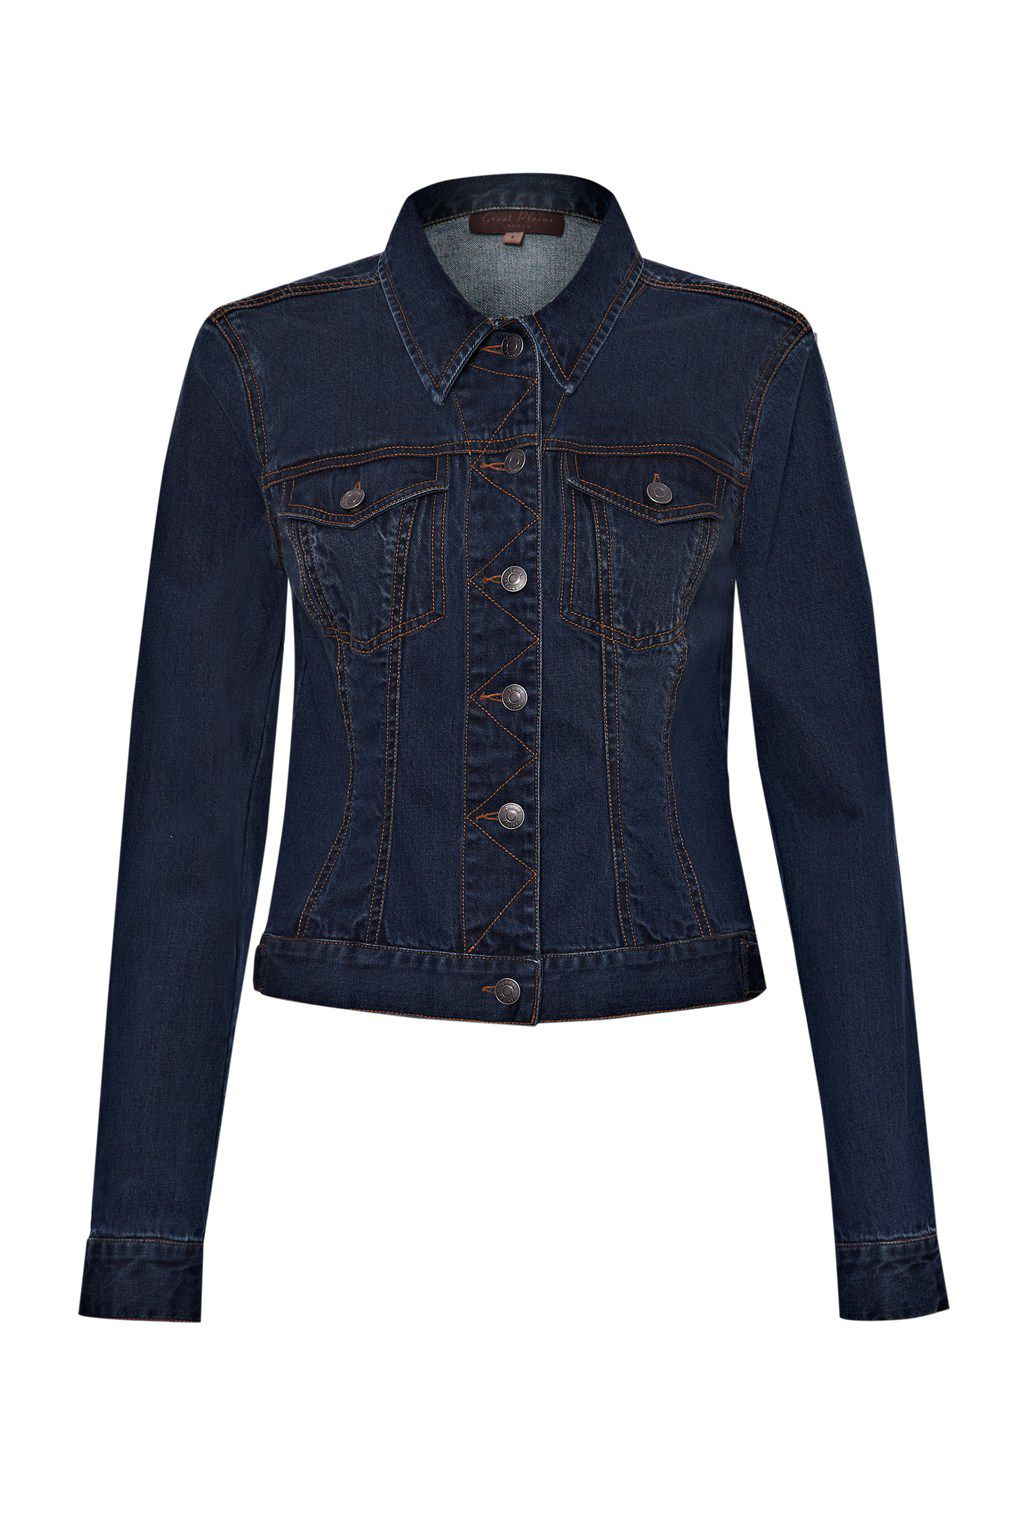 Sweet sadie denim jacket